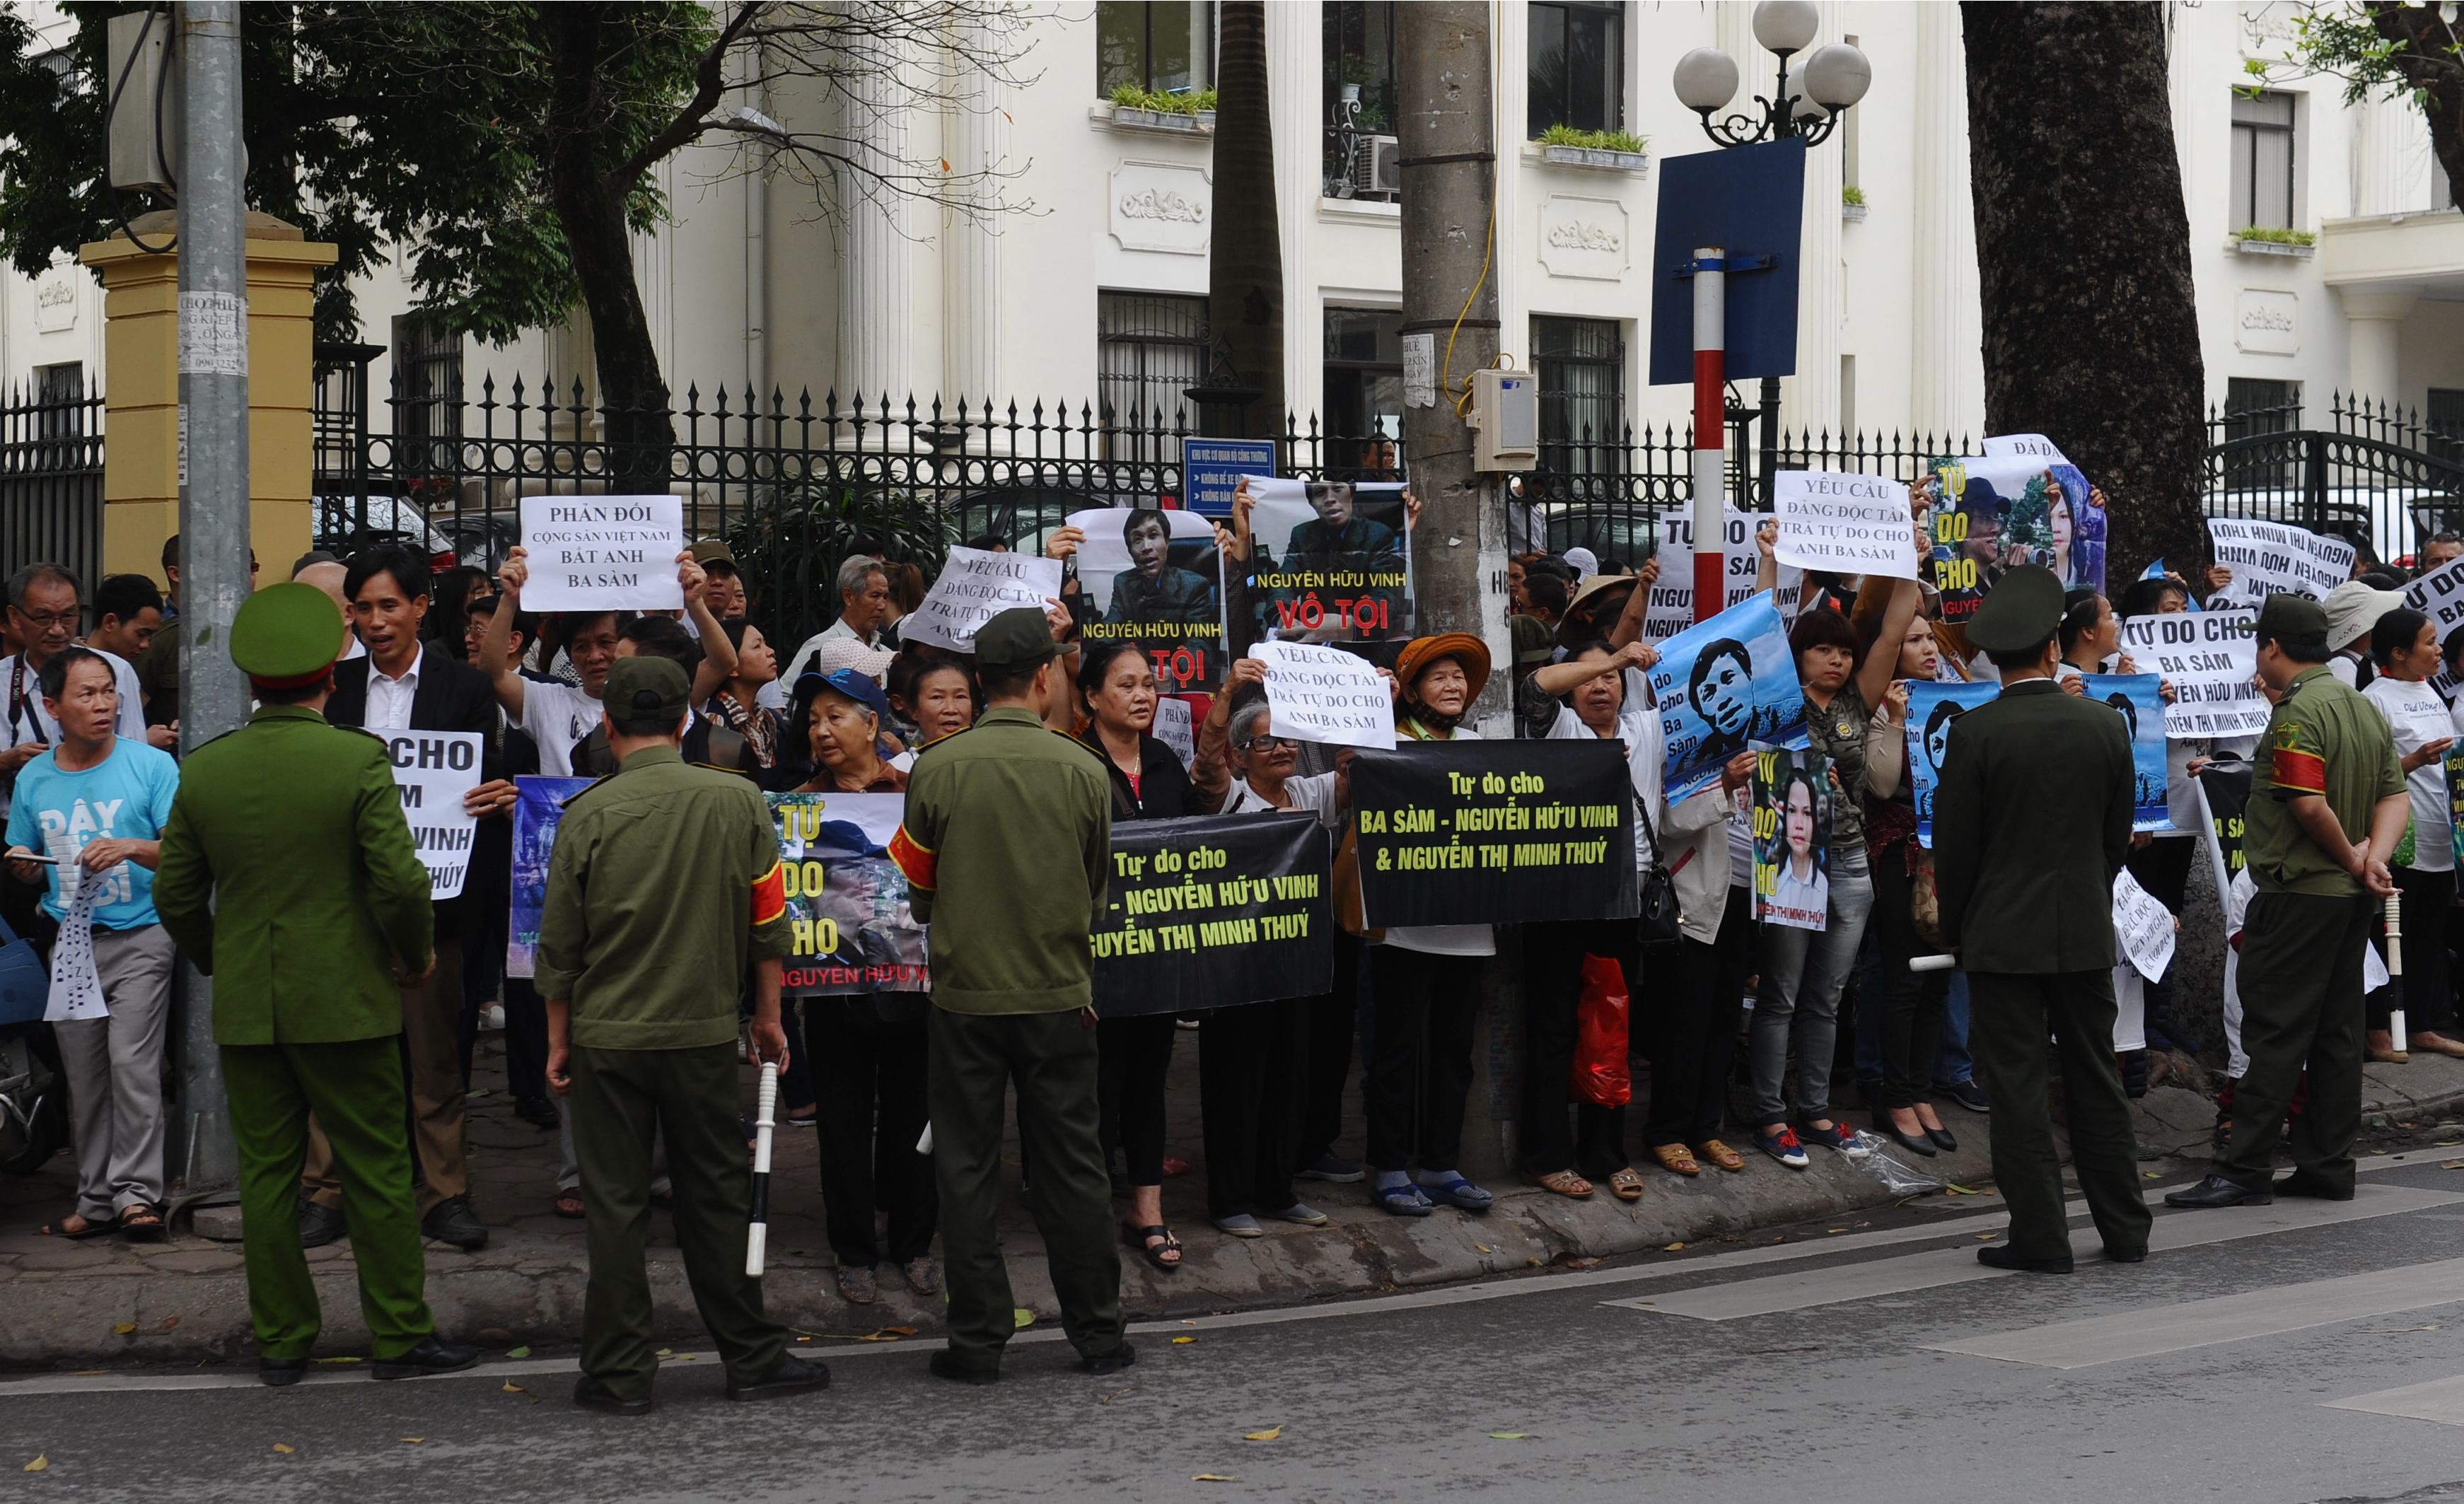 Vietnam : Bloggers and citizen journalists v. state violence | Reporters without borders